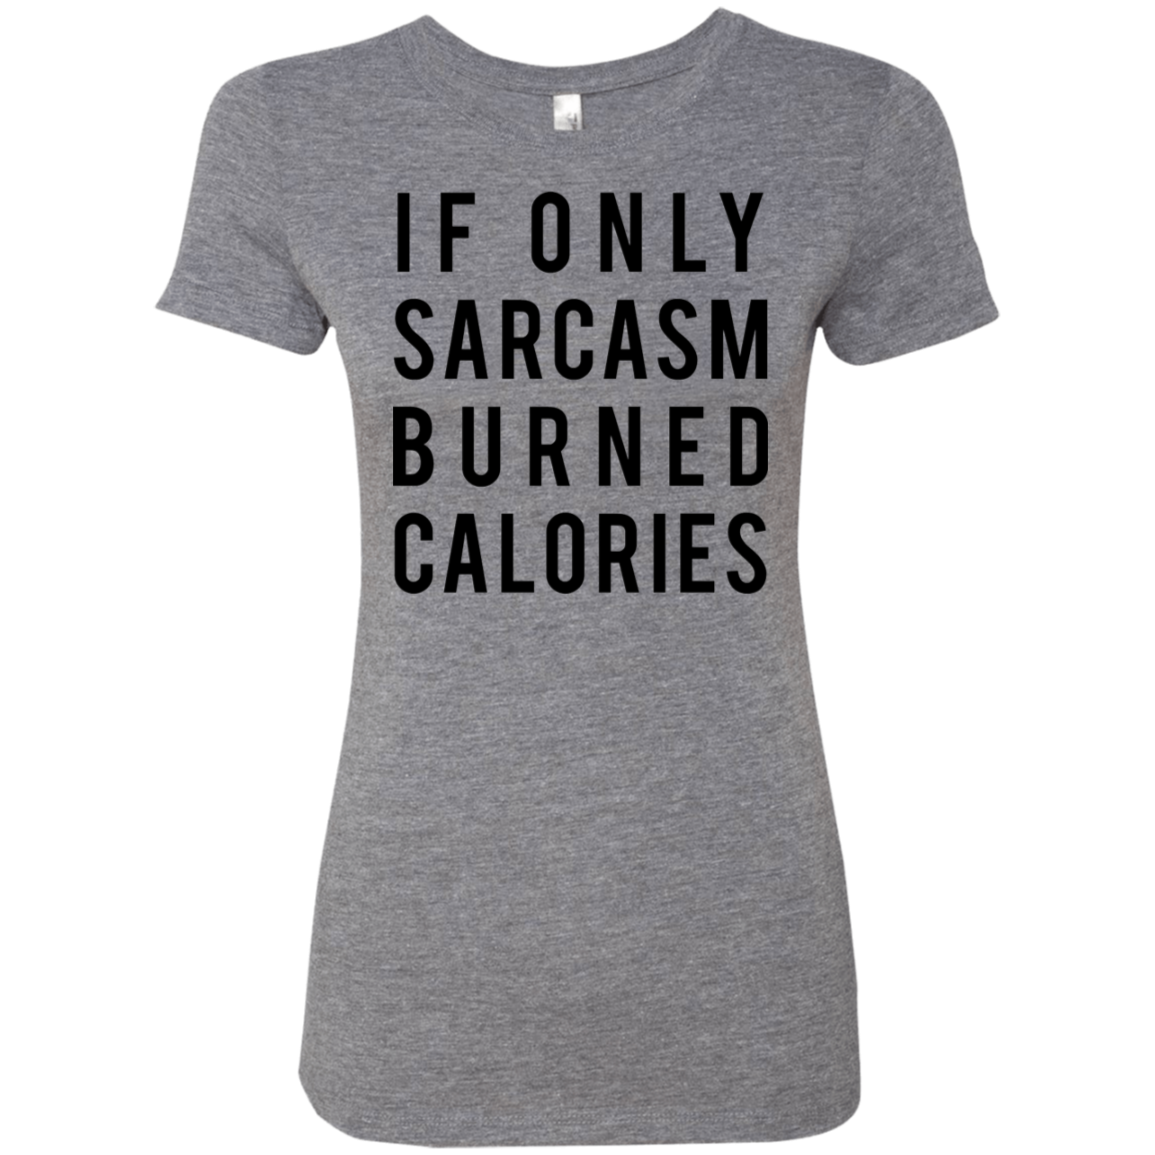 If Only Sarcasm Burned Calories Women's Classic Tee - Trendy Tees